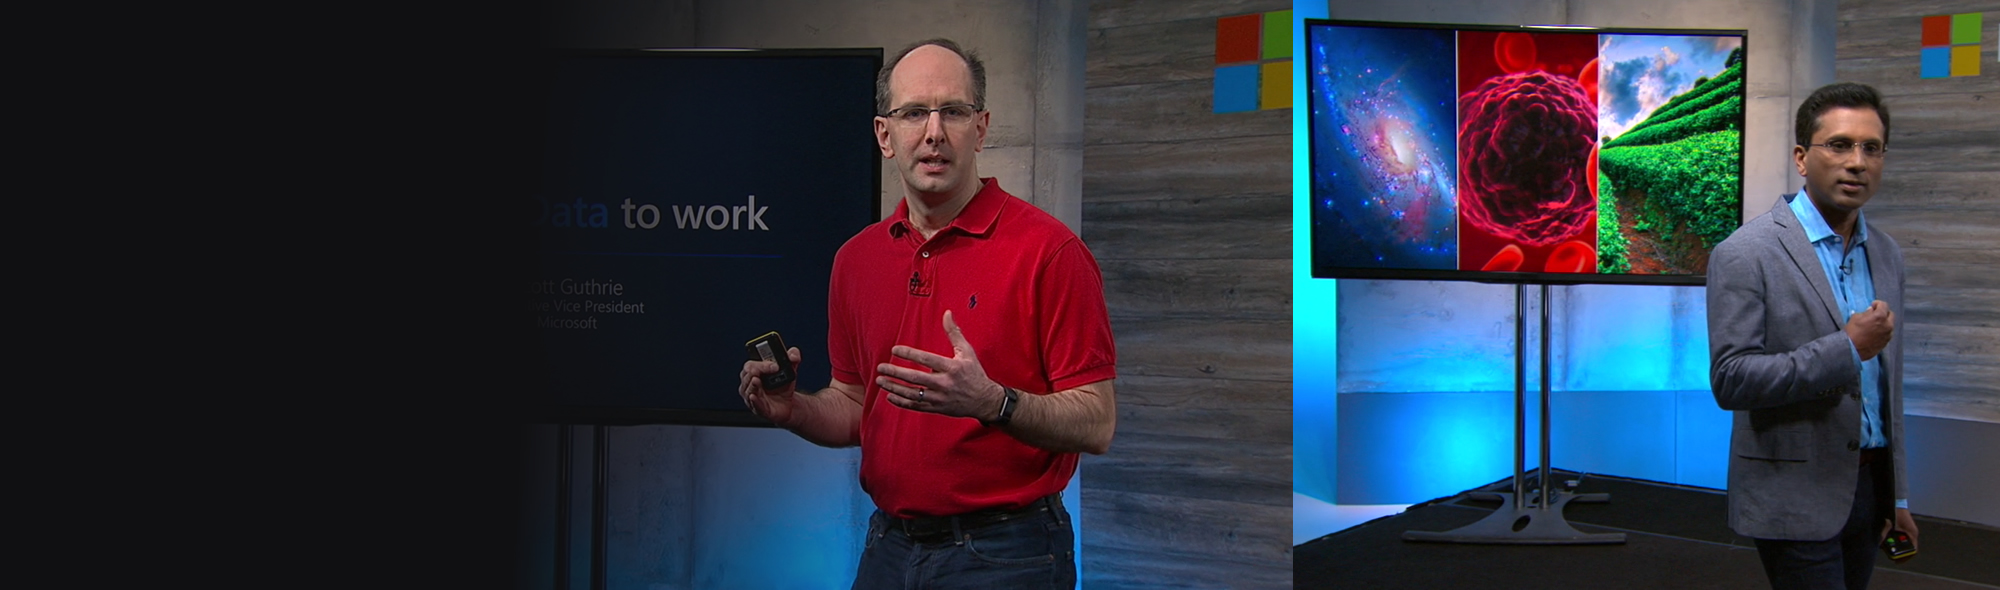 Scott Guthrie speaking at Microsoft Data Amp event.